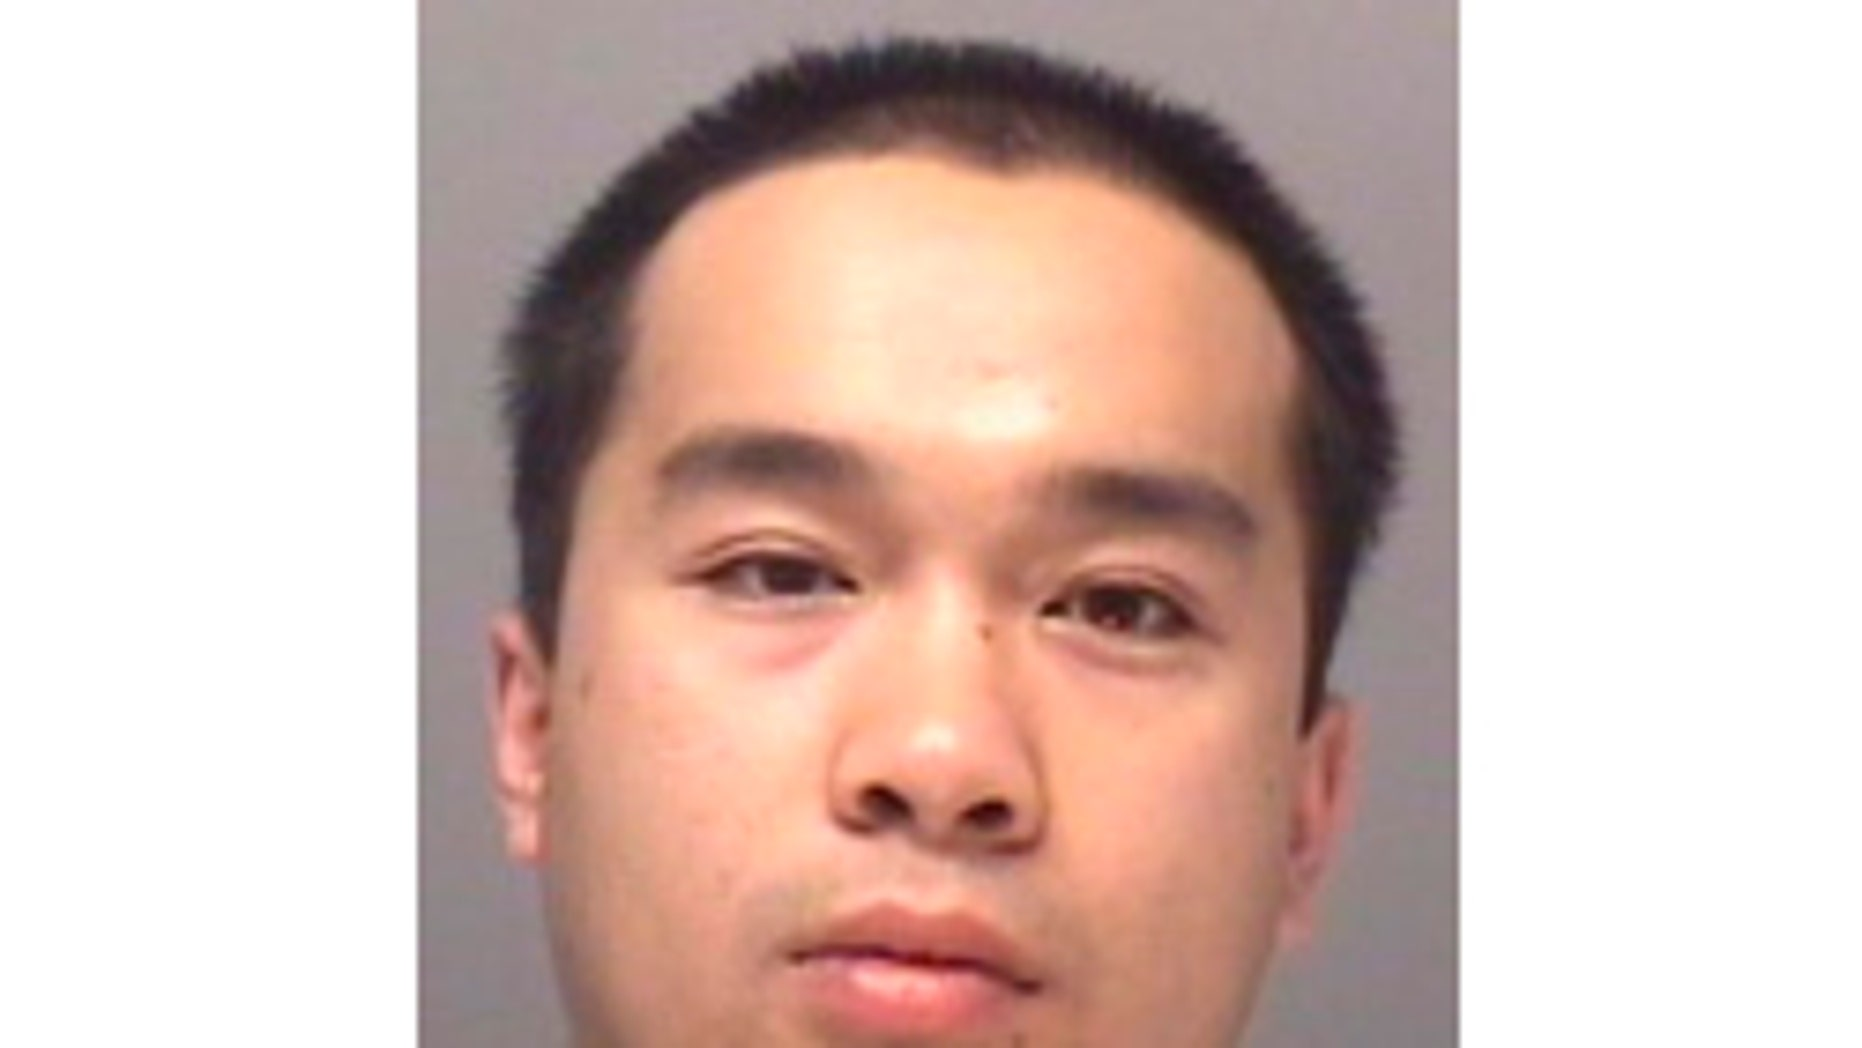 Montreal police arrest Laotian man on US most-wanted list